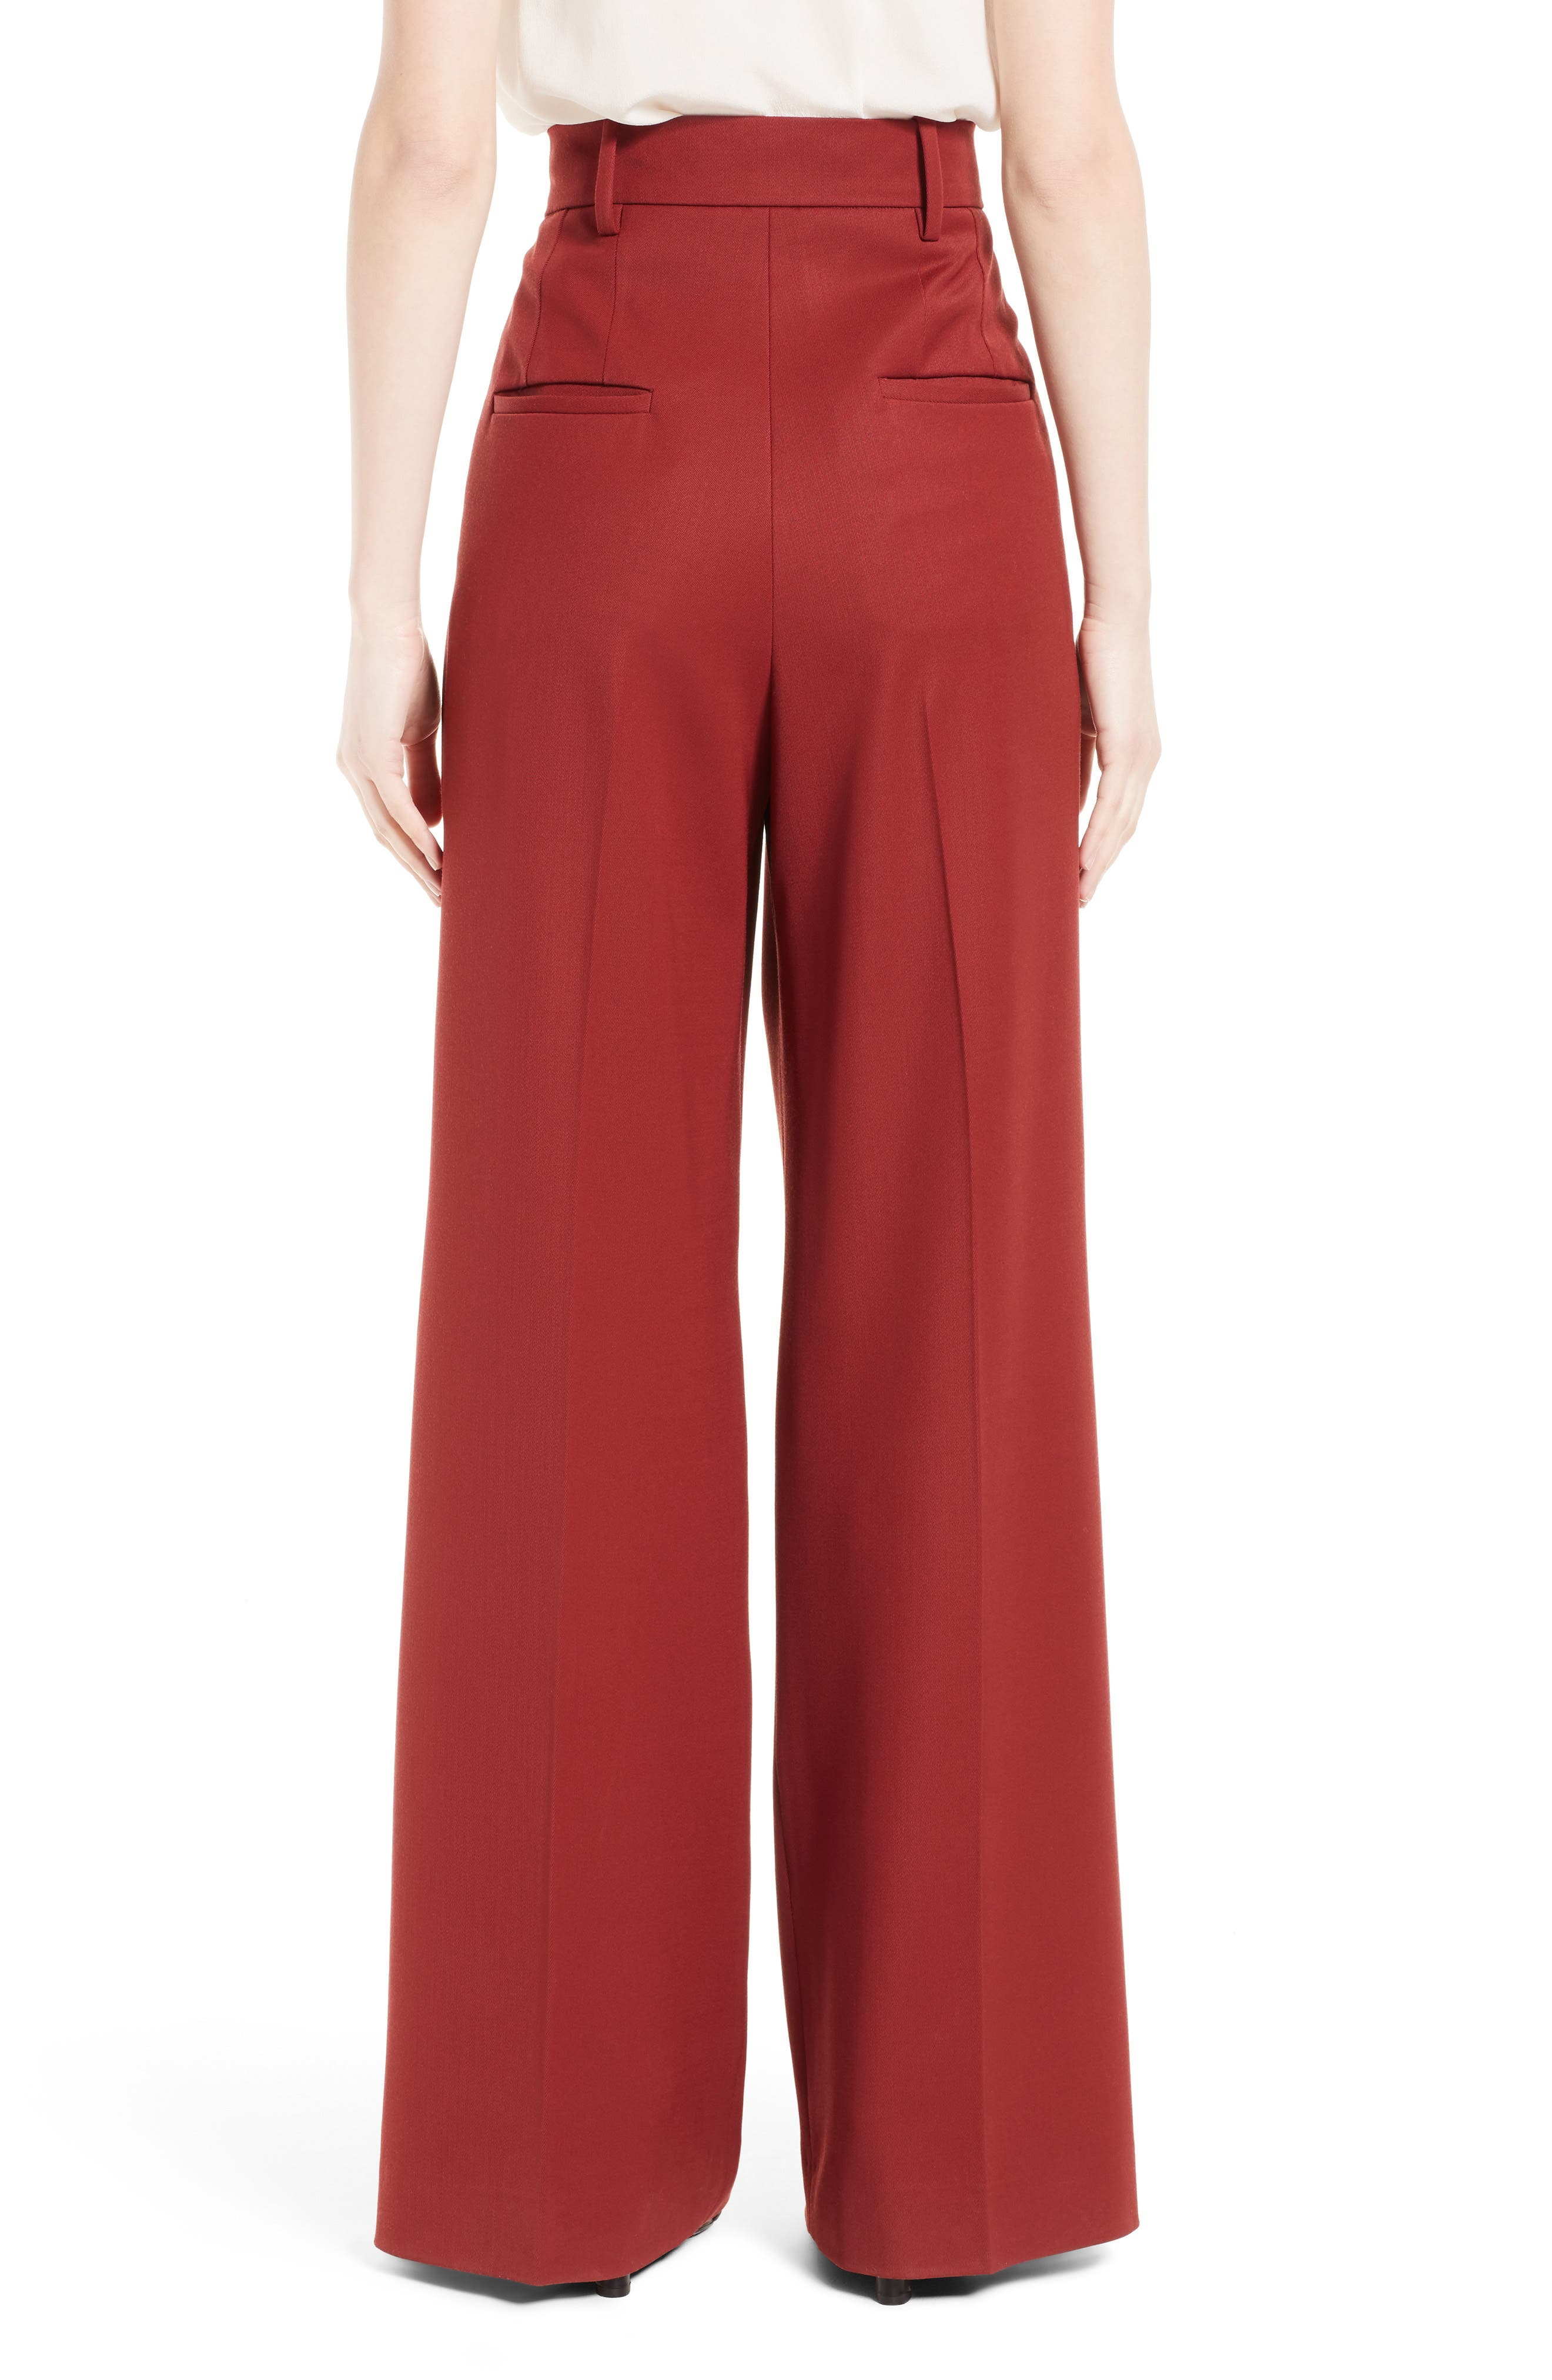 Stretch Wool Wide Leg Pants,                             Alternate thumbnail 2, color,                             930